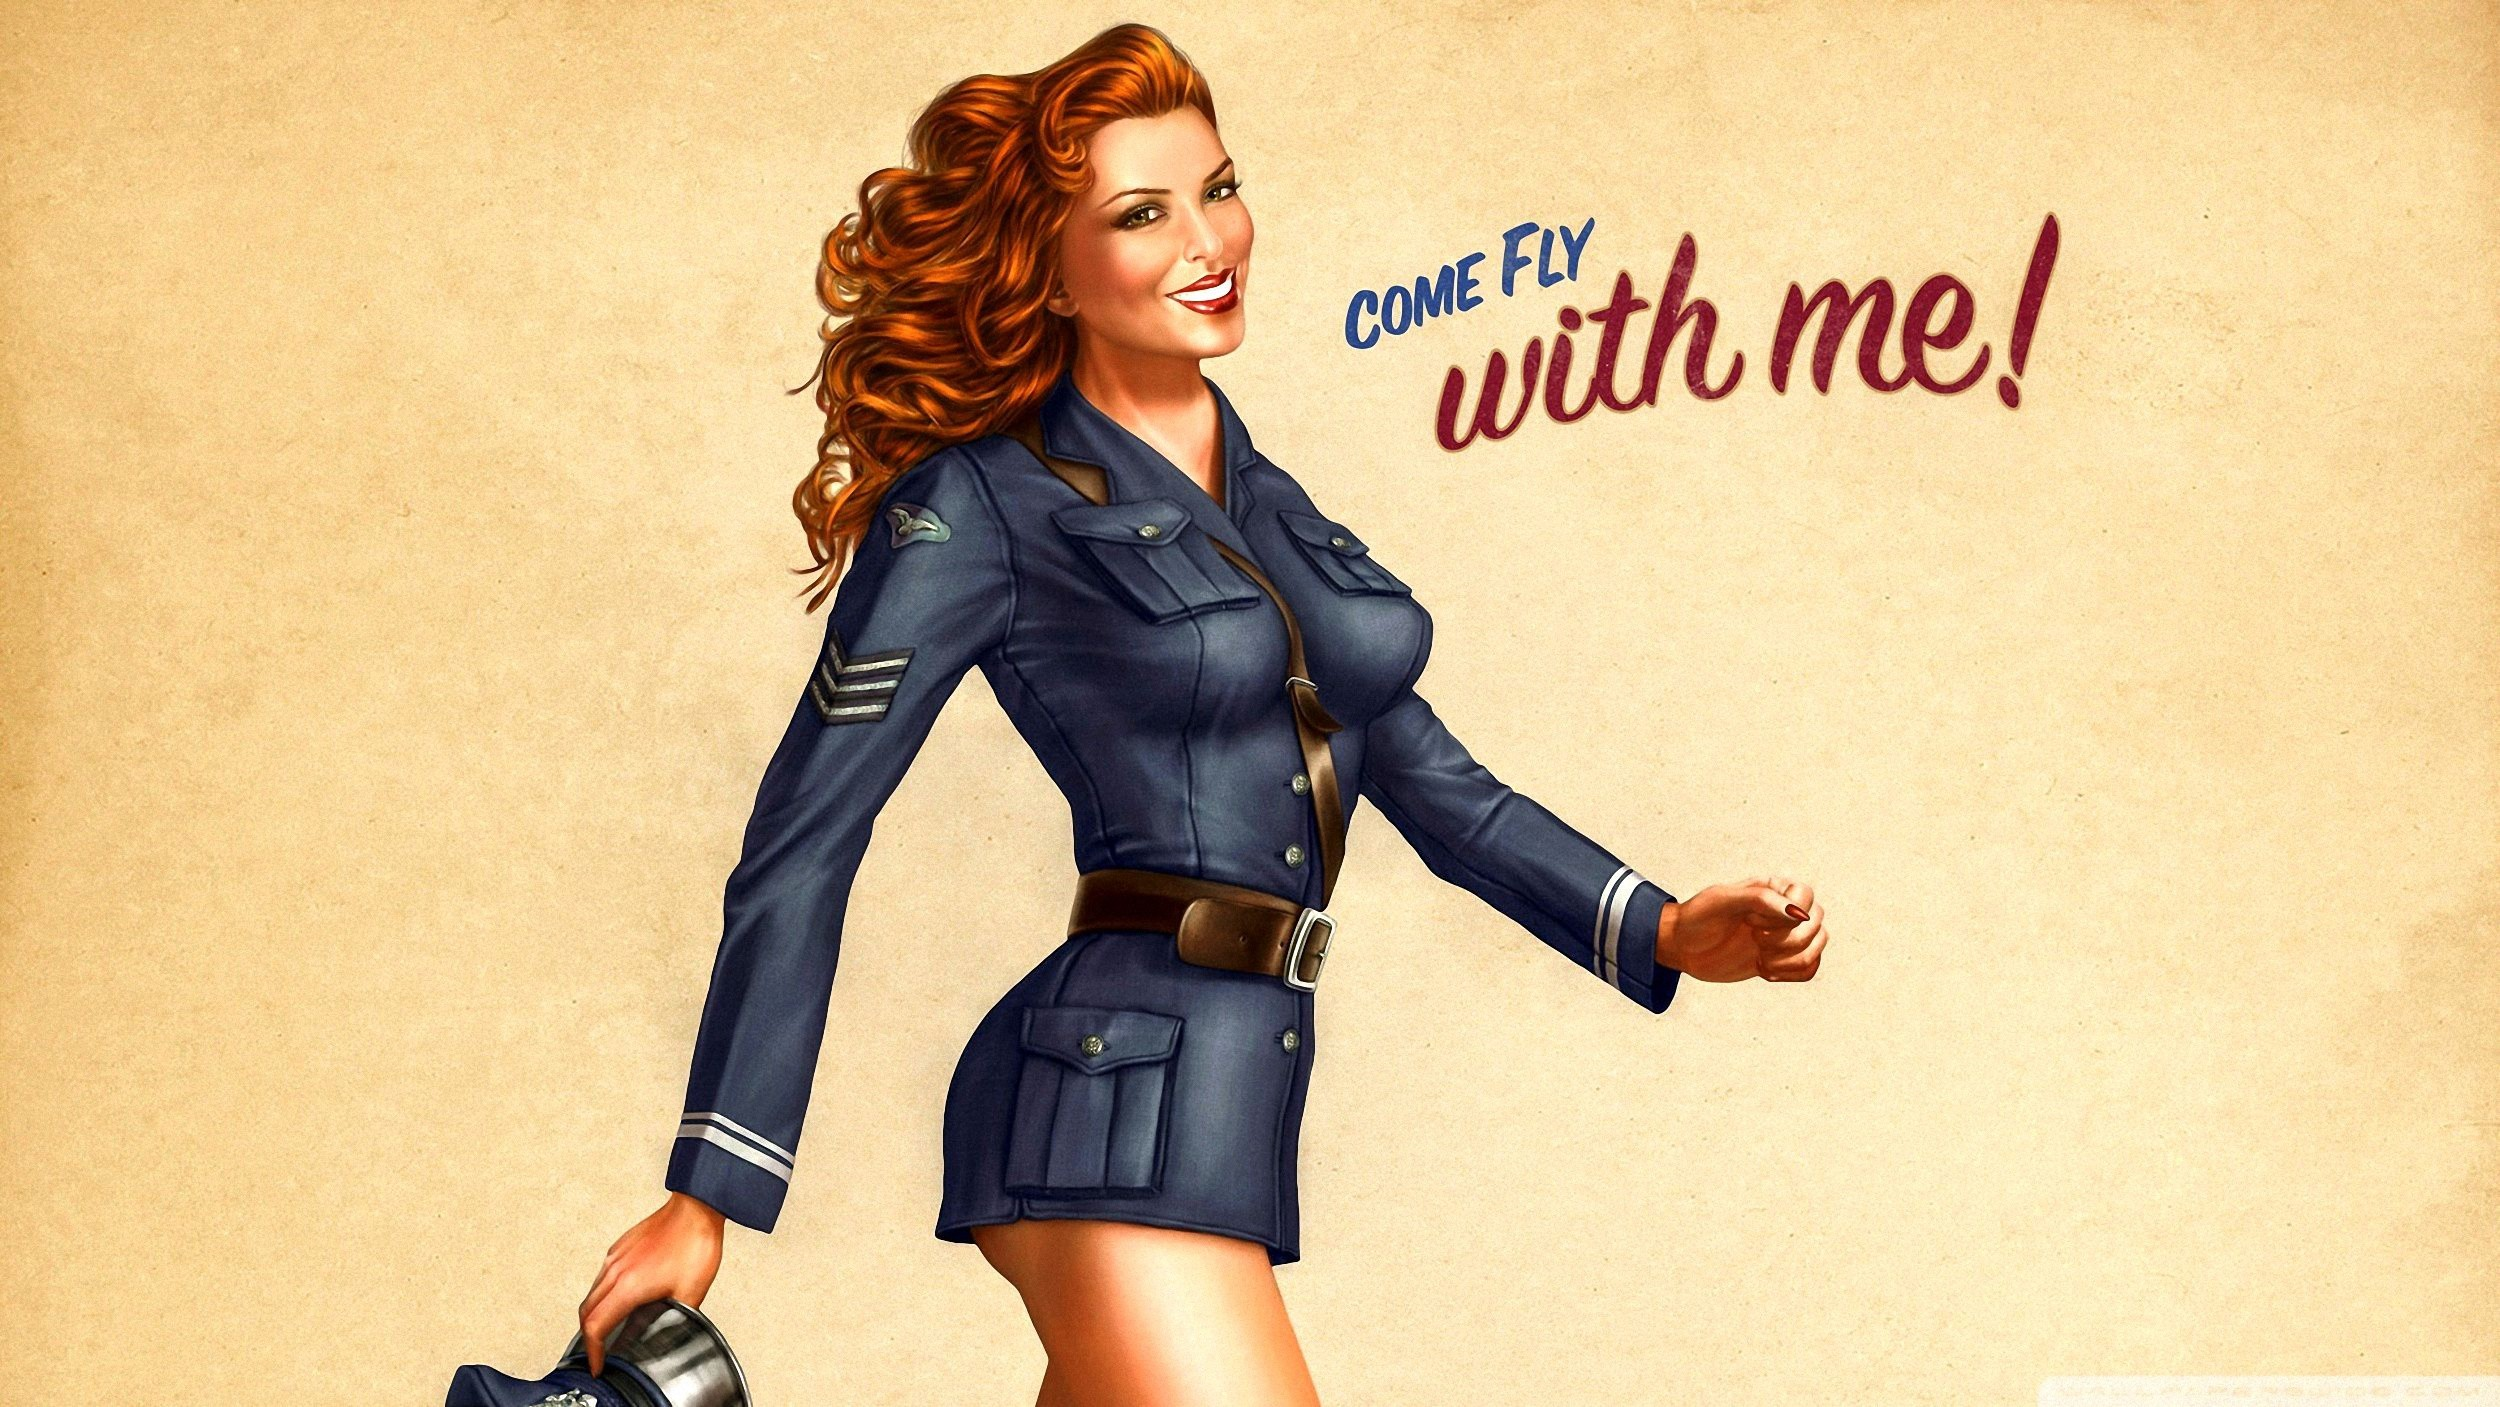 Pin By Mark On Hd Wallpapers: Pin Up Wallpaper HD (68+ Images